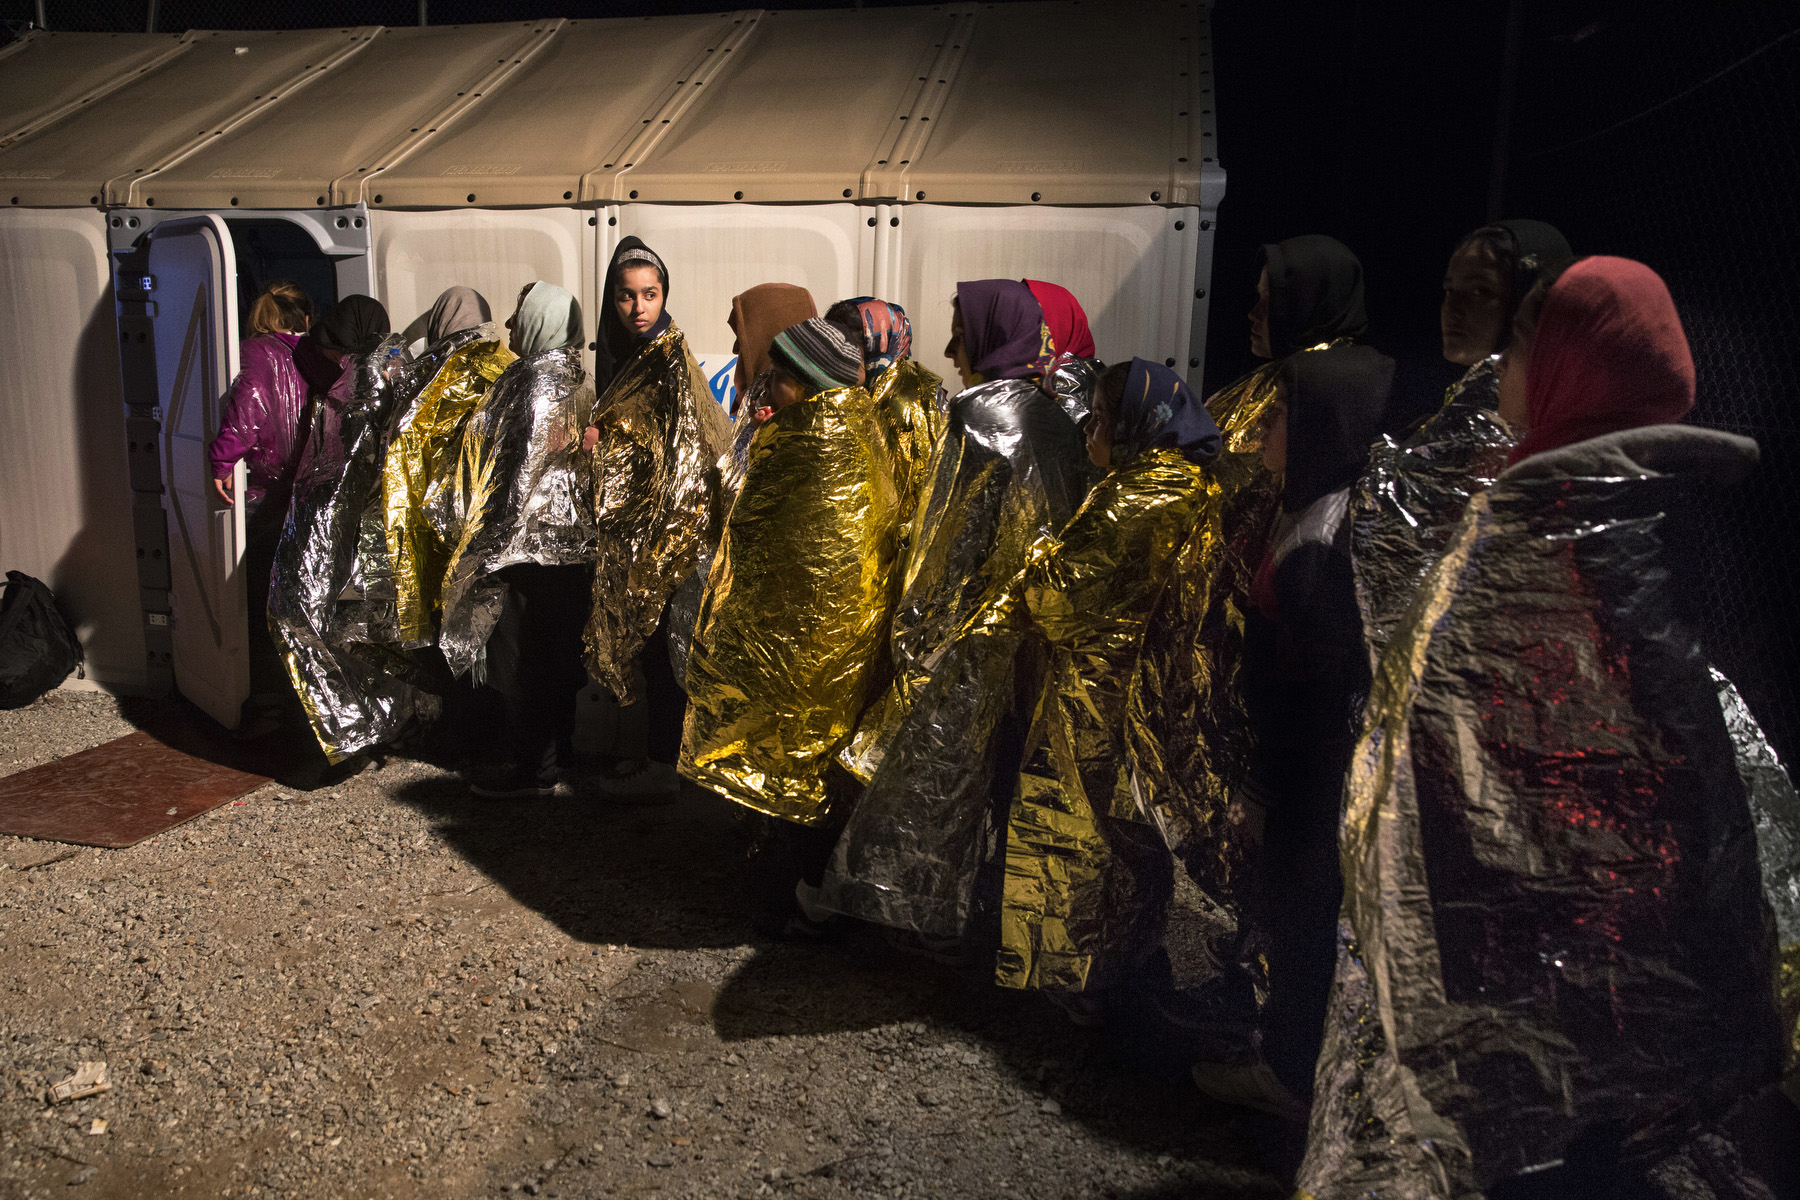 LESBOS, GREECE - OCTOBER 25: Women keep warm wrapped in emergency blankets while standing in line to change out of their wet clothes at a transitional camp. Colder weather and rough seas continue to cause deaths at sea as thousands travel in overcrowded small rafts. According to the IOM, an estimated 100,000 people landed in Greece, an average of almost 4,500 per day in late October and November. Nearly all of those entering Greece on a boat from Turkey are from the war zones of Syria, Iraq and Afghanistan. (Photo by Paula Bronstein)